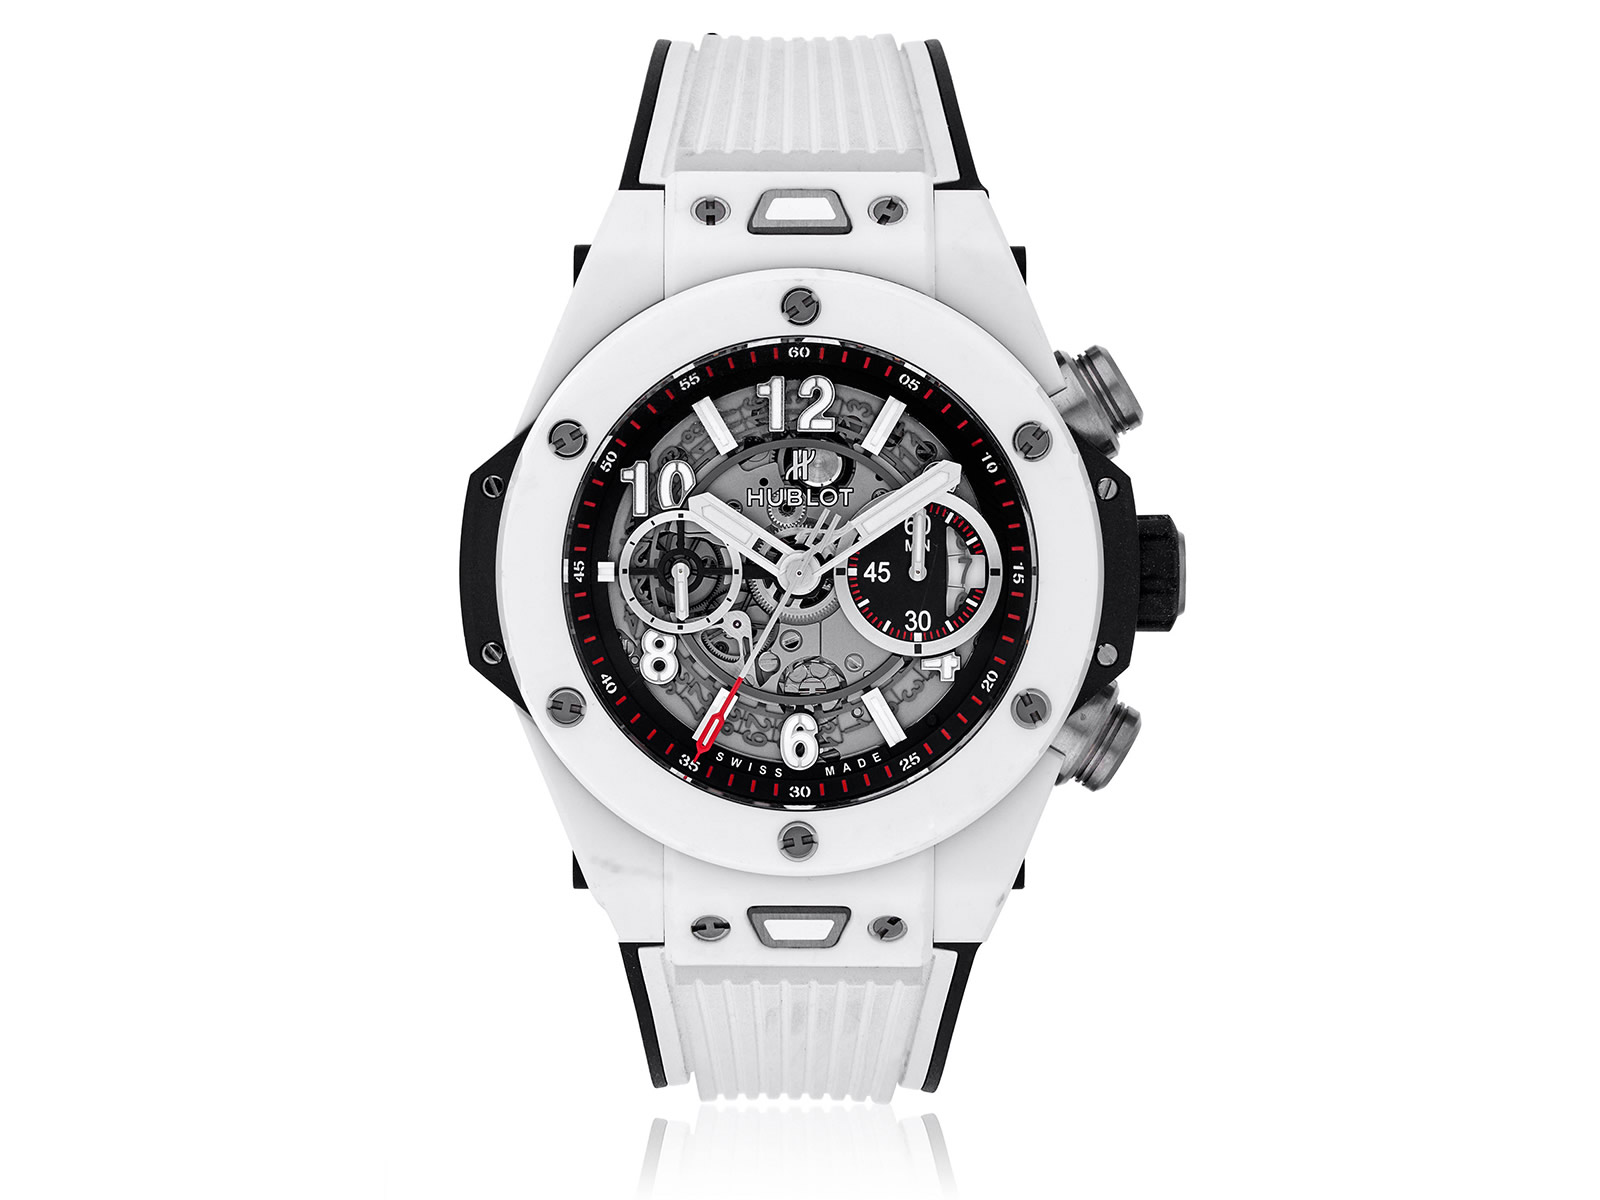 411-hx-1170-rx-hublot-big-bang-unico-white-ceramic-1-.jpg